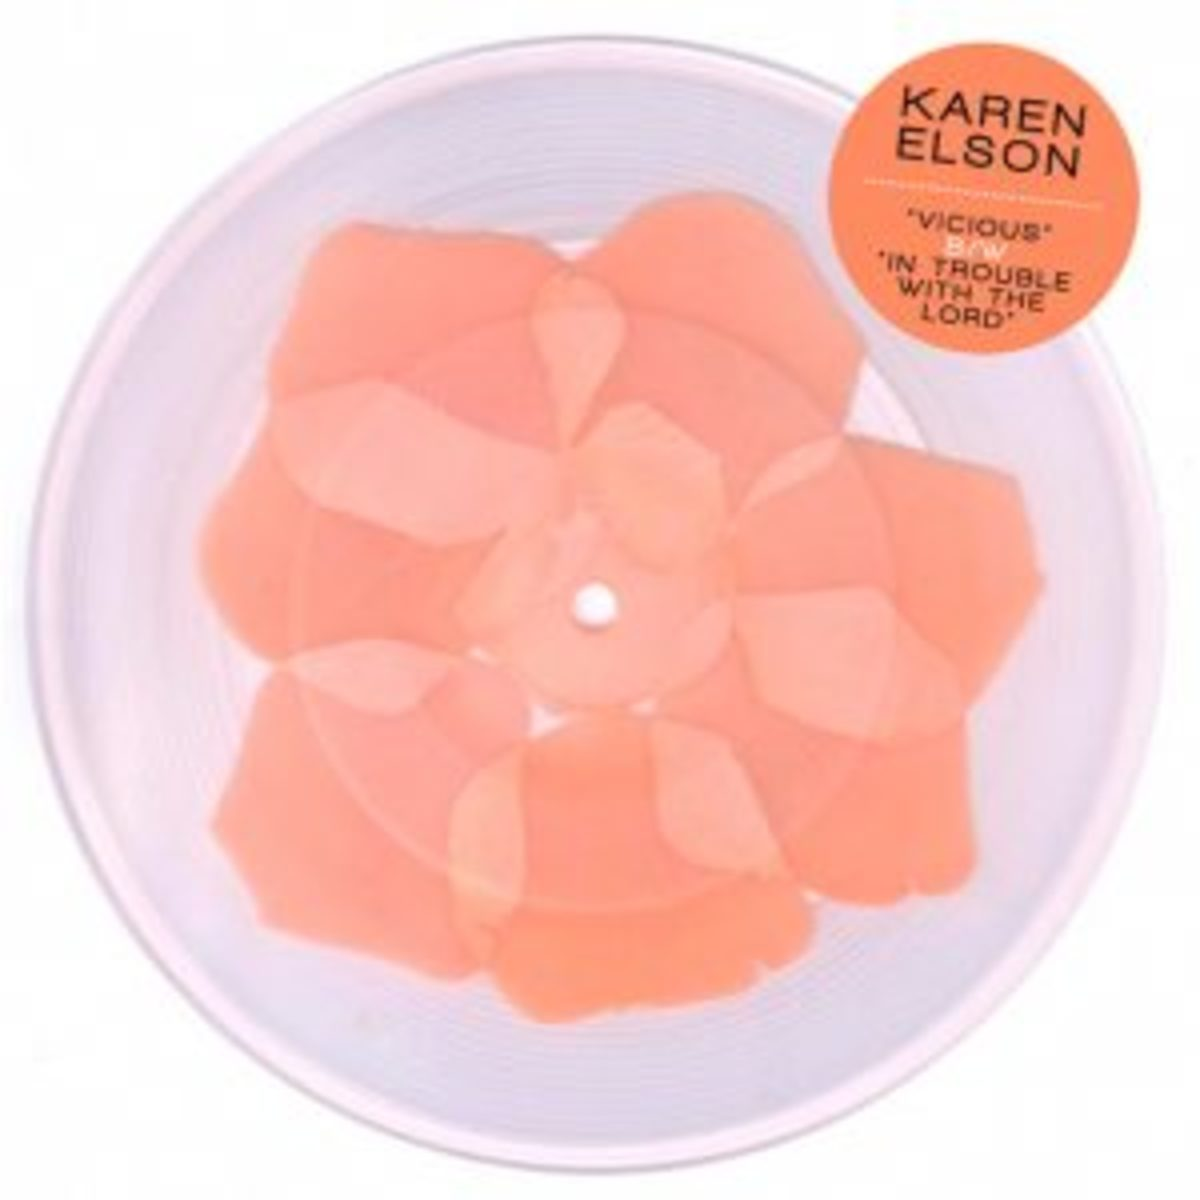 """Third Man's 7-inch of Karen Elson """"Vicious,"""" pressed with imitation flower petals, was released at Record Store Day in 2011."""